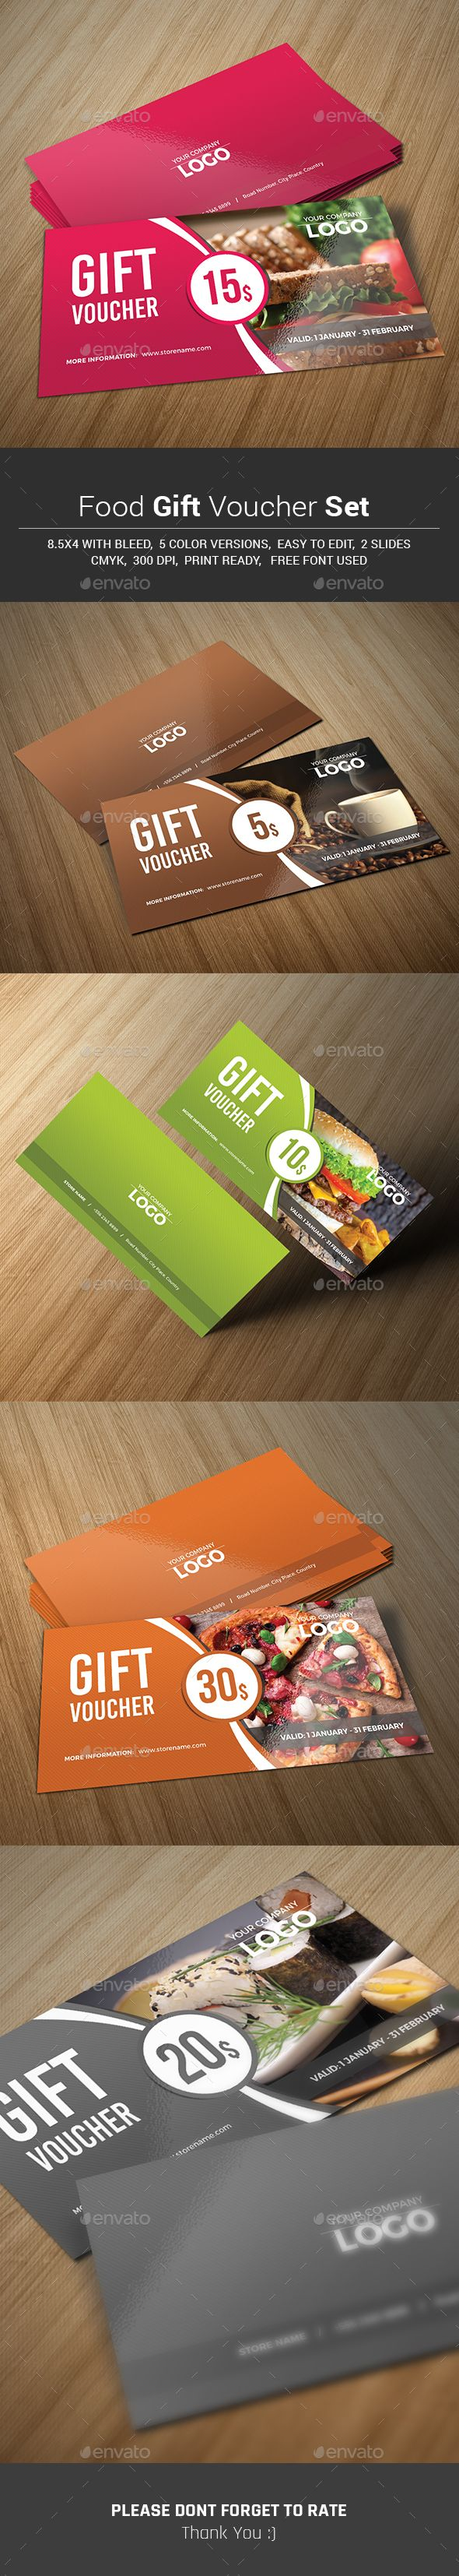 Food Gift Voucher Set Template Psd Design Download Http